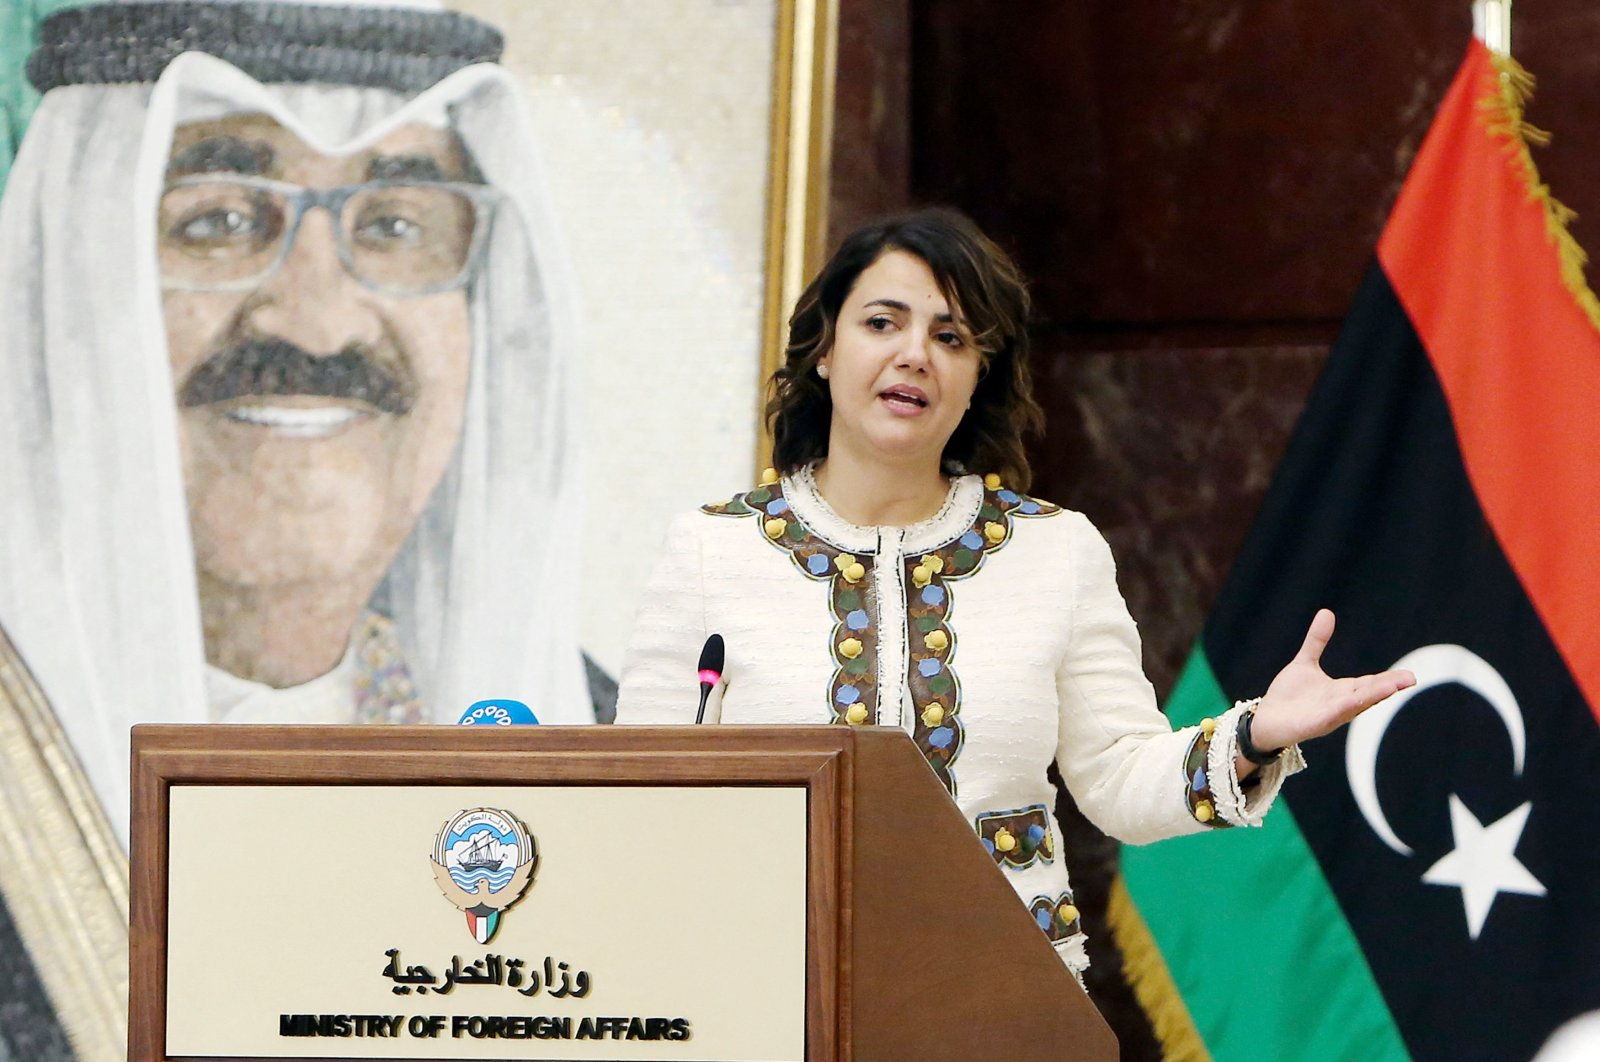 Libyan Foreign Minister Najla Mangoush speaks during a joint news conference with her Kuwaiti counterpart in Kuwait City on Oct. 3, 2021. (AFP Photo)